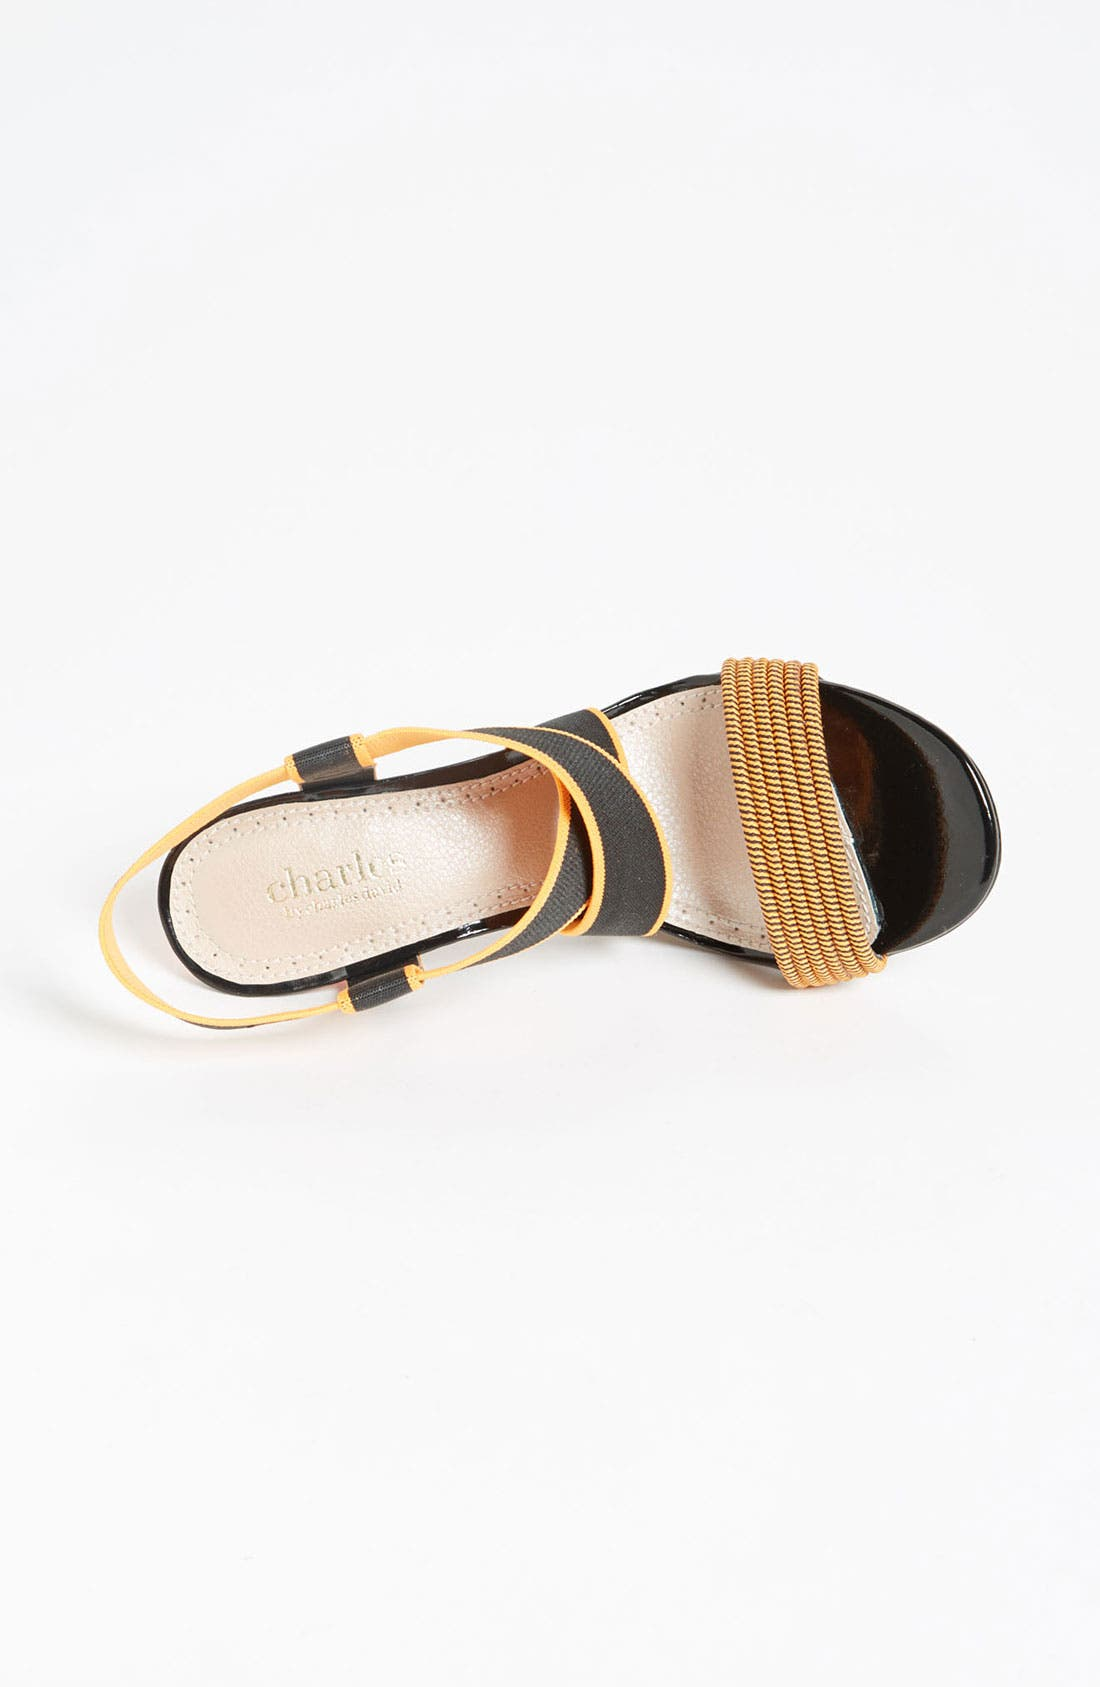 Alternate Image 3  - Charles by Charles David 'Regency' Sandal